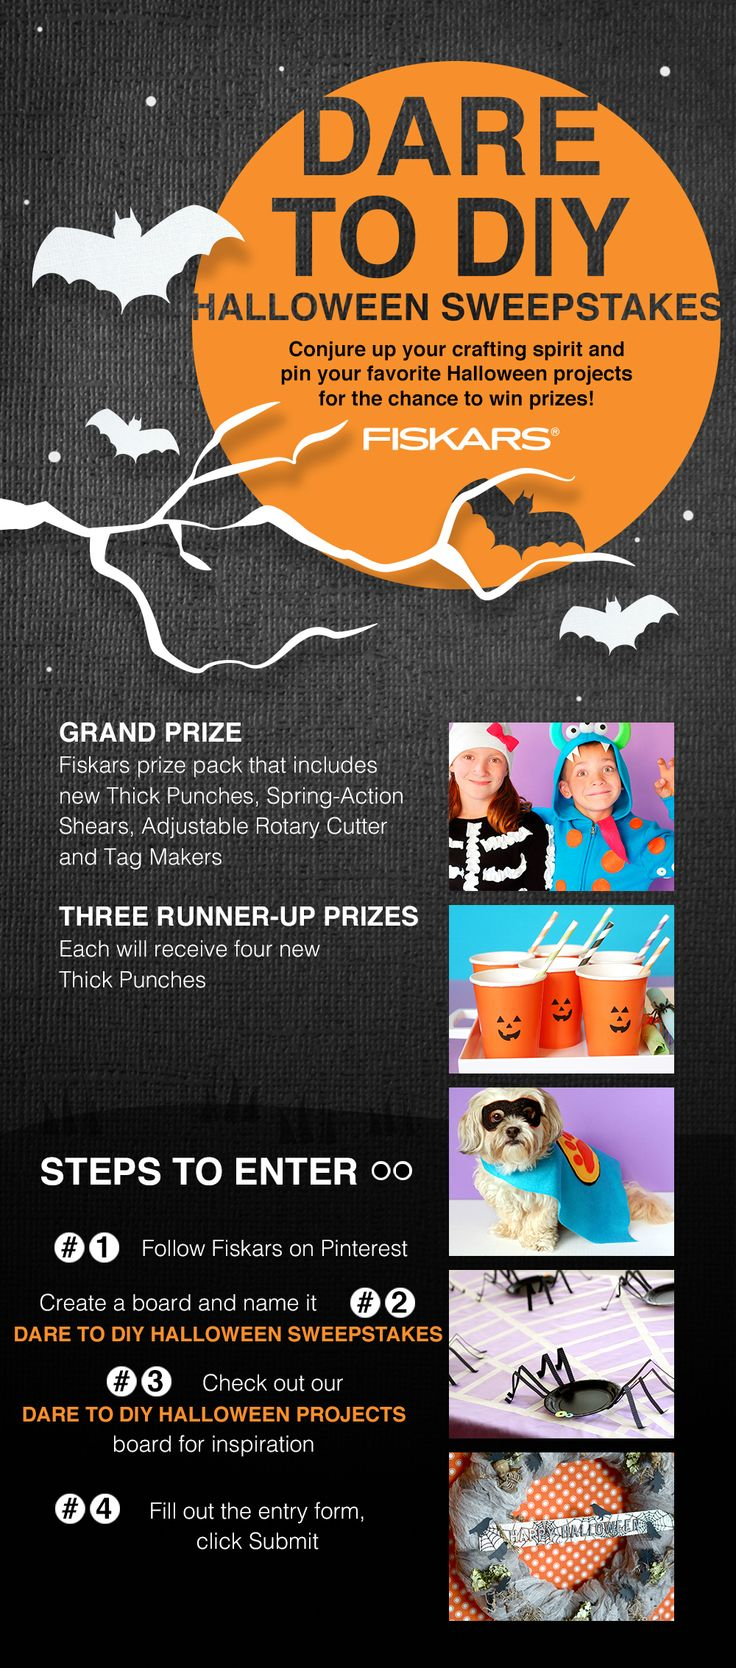 Follow @Fiskars_HQ and pin your favorite Halloween projects for a random chance to win a Fiskars Prize Pack! Promotion runs from October 5 through October 30, 2015. Enter here: http://cur.lt/1WIMqNO